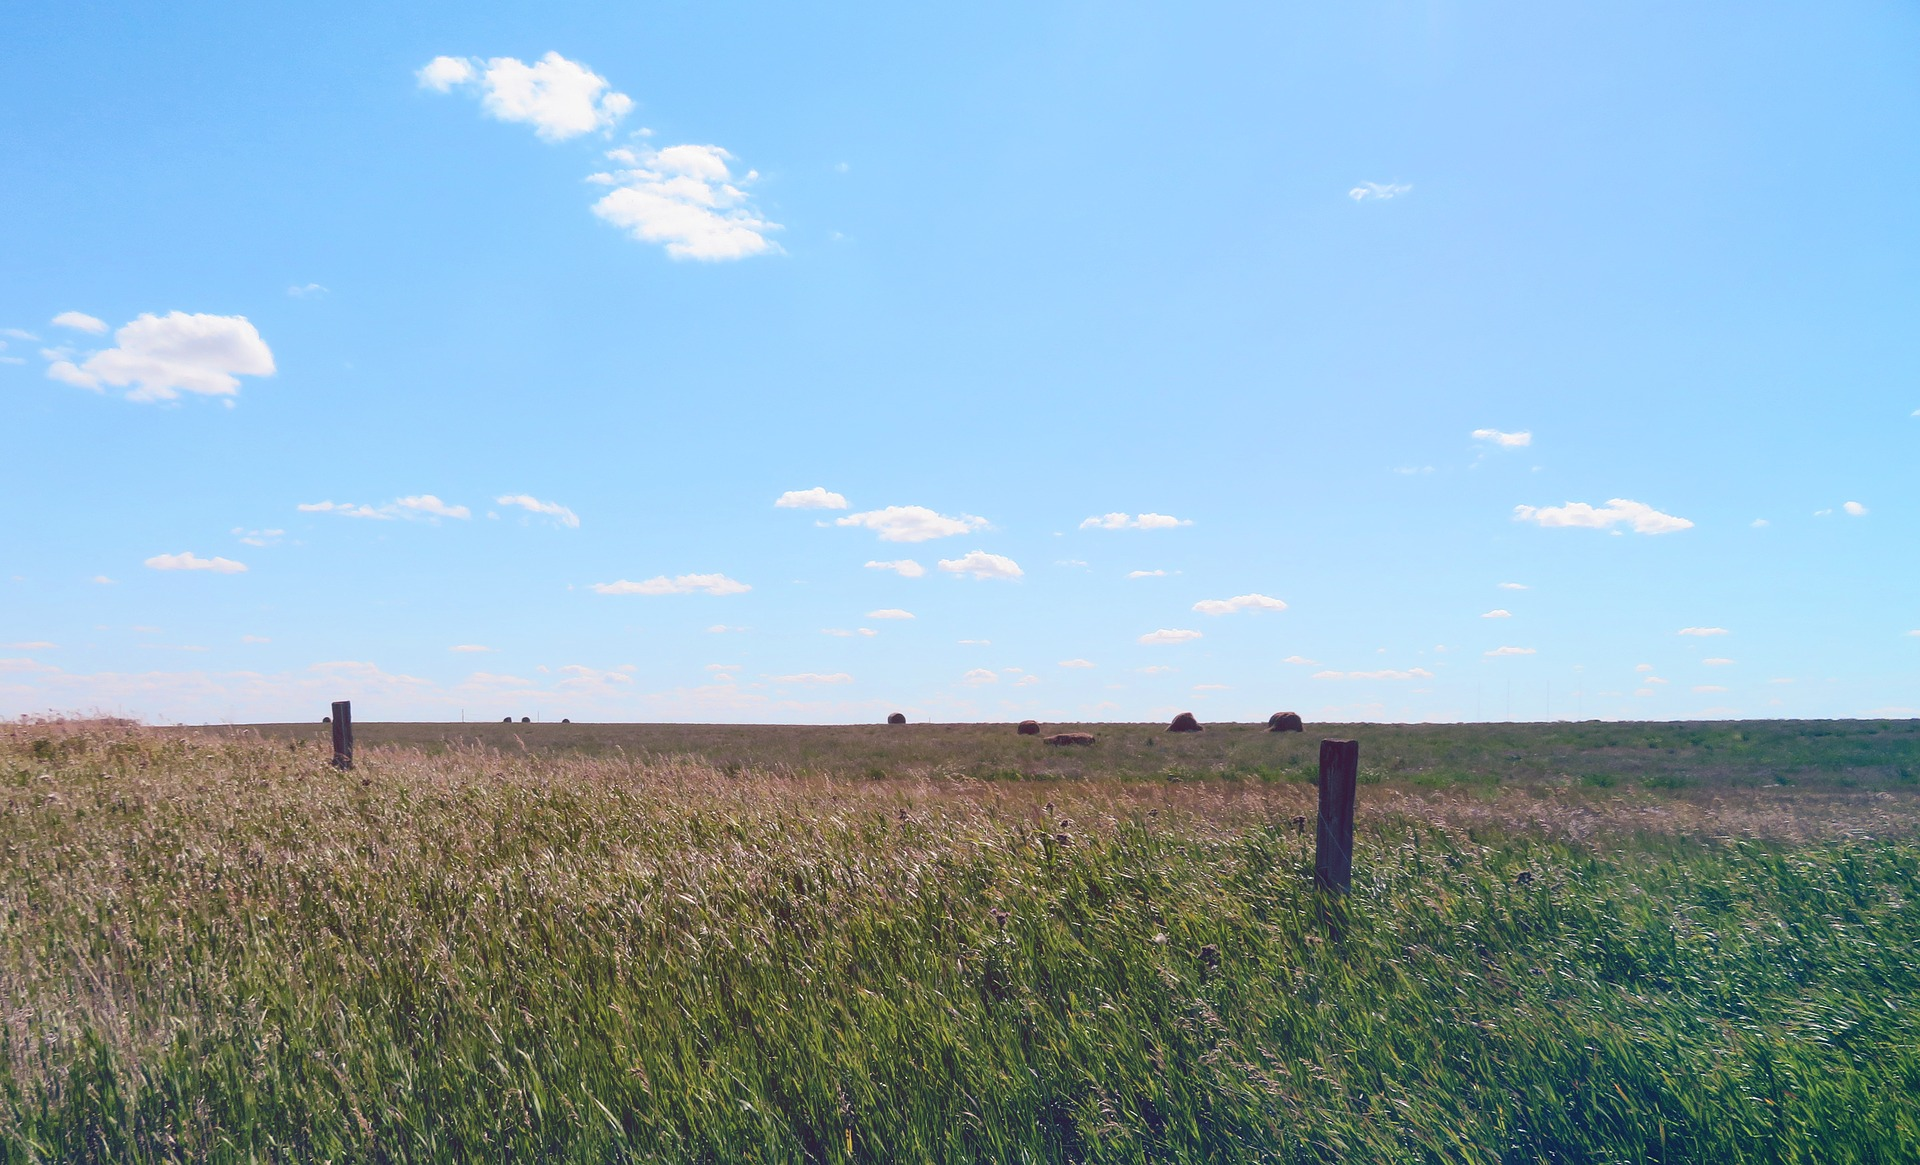 Legal Challenges to the Government of Saskatchewan's Proposed Sell-Off of Public Pastures